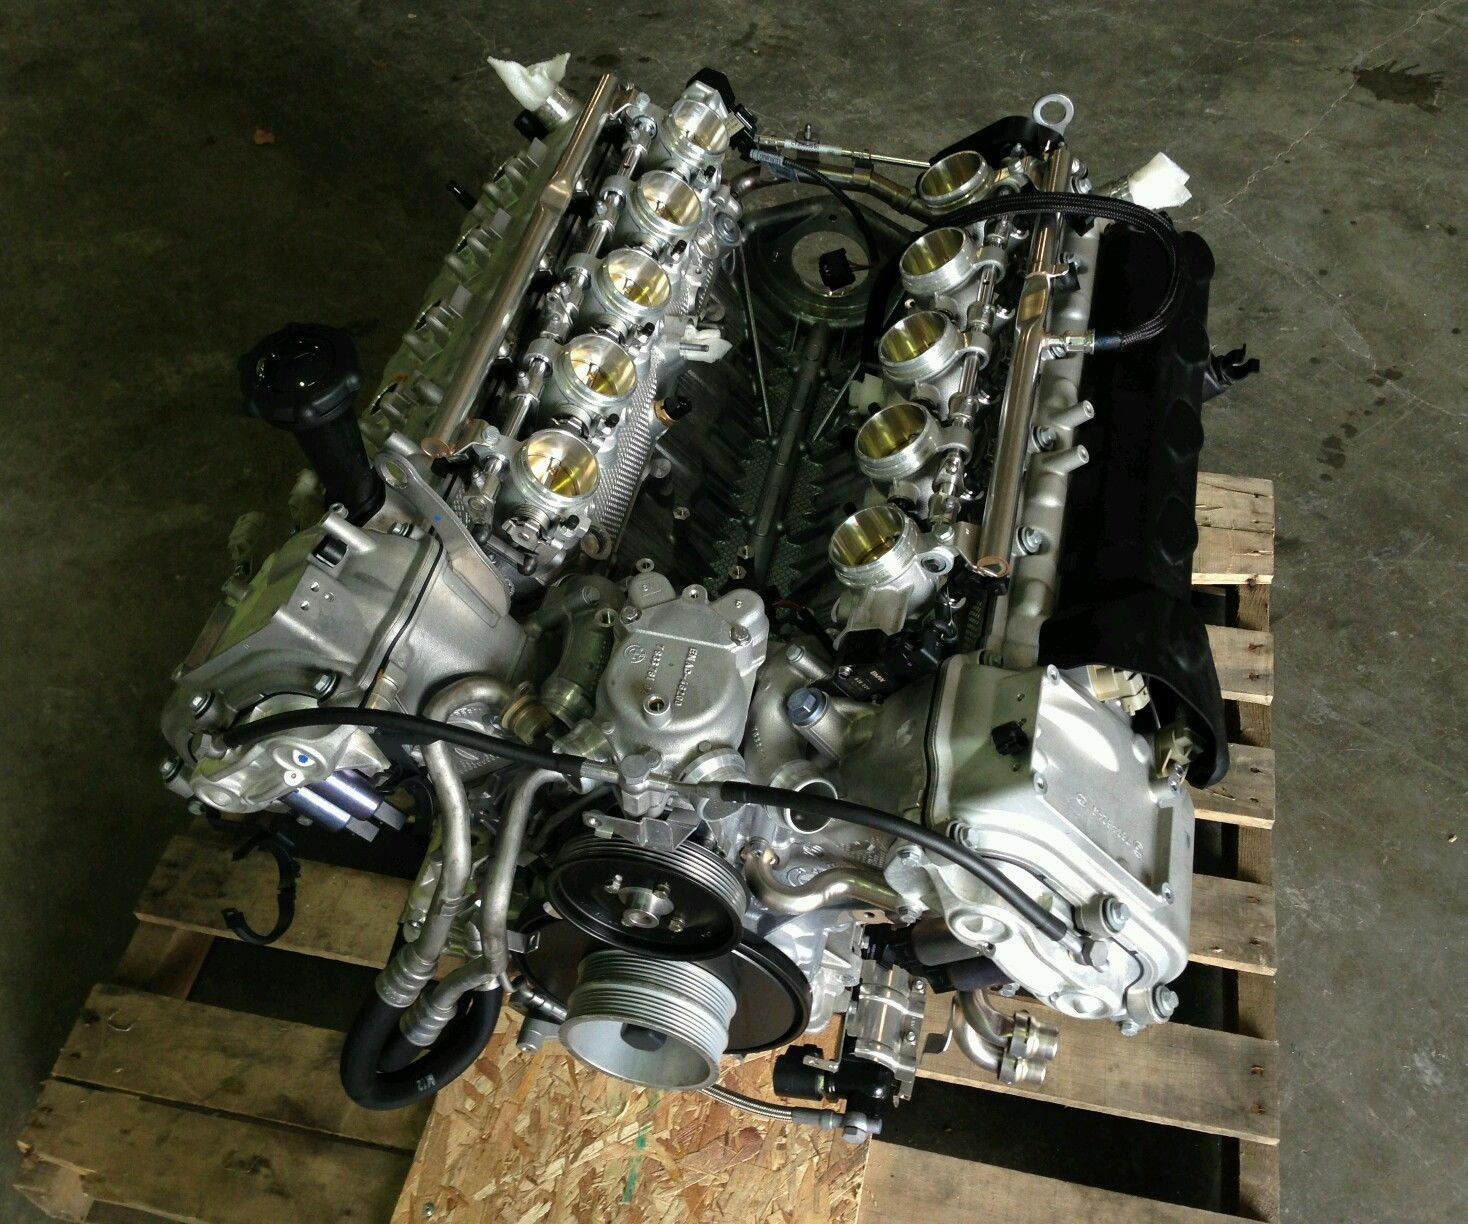 BMW M5 V10 ENGINE LONG BLOCK 507HP S85 Low Miles